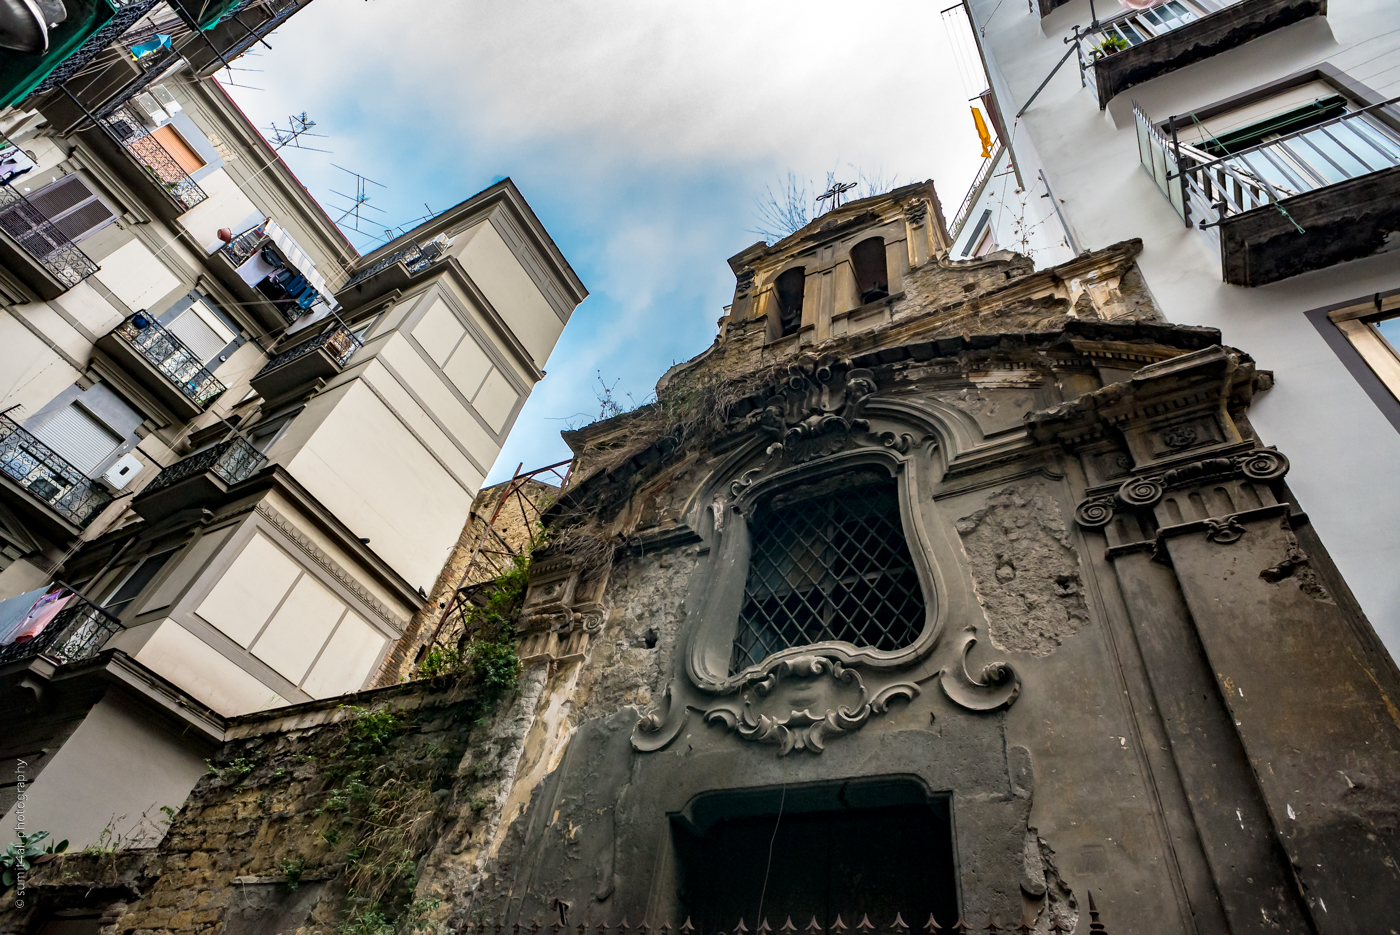 Old Buildings in a Historic City, Naples, Italy